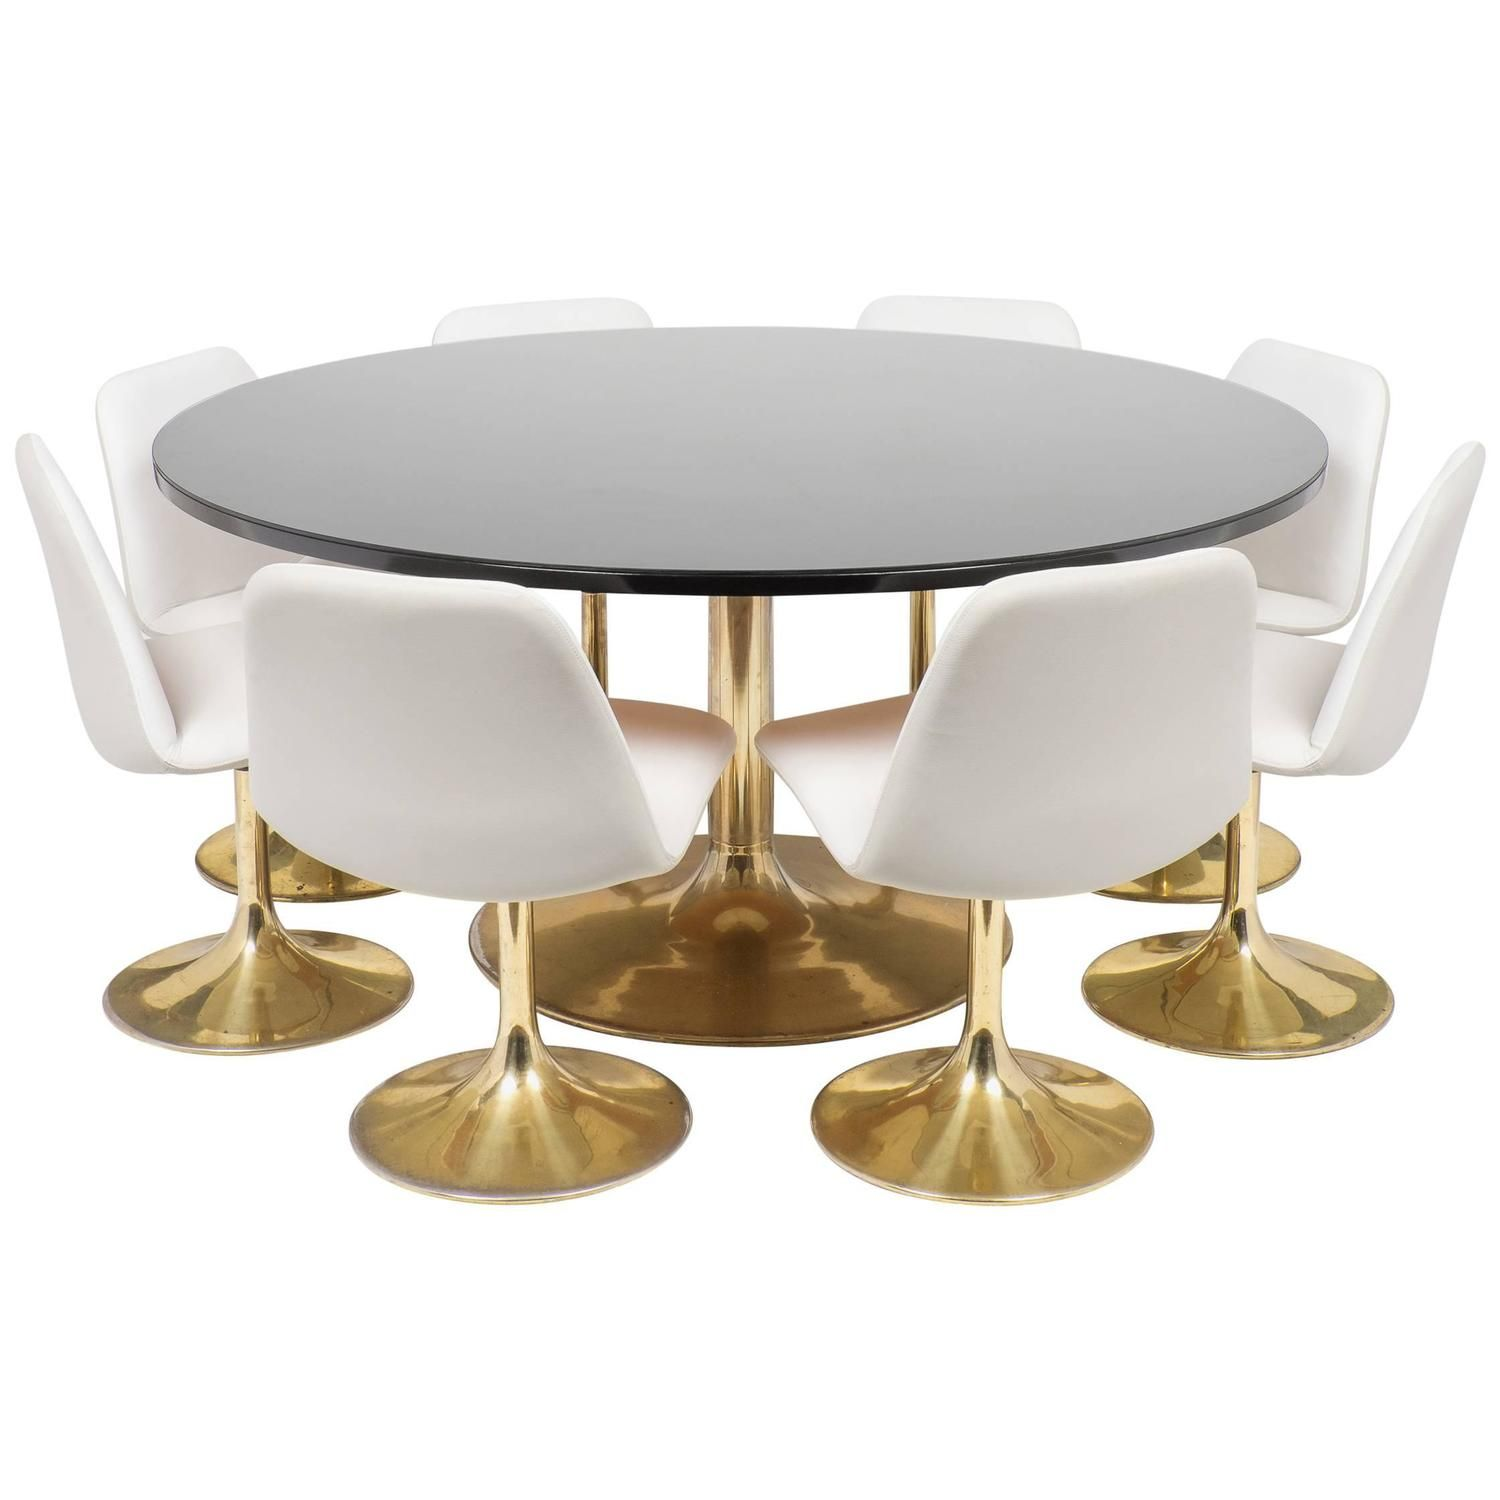 round top table arabescato tulip white main products company knoll dining potato base saarinen eero marble couch